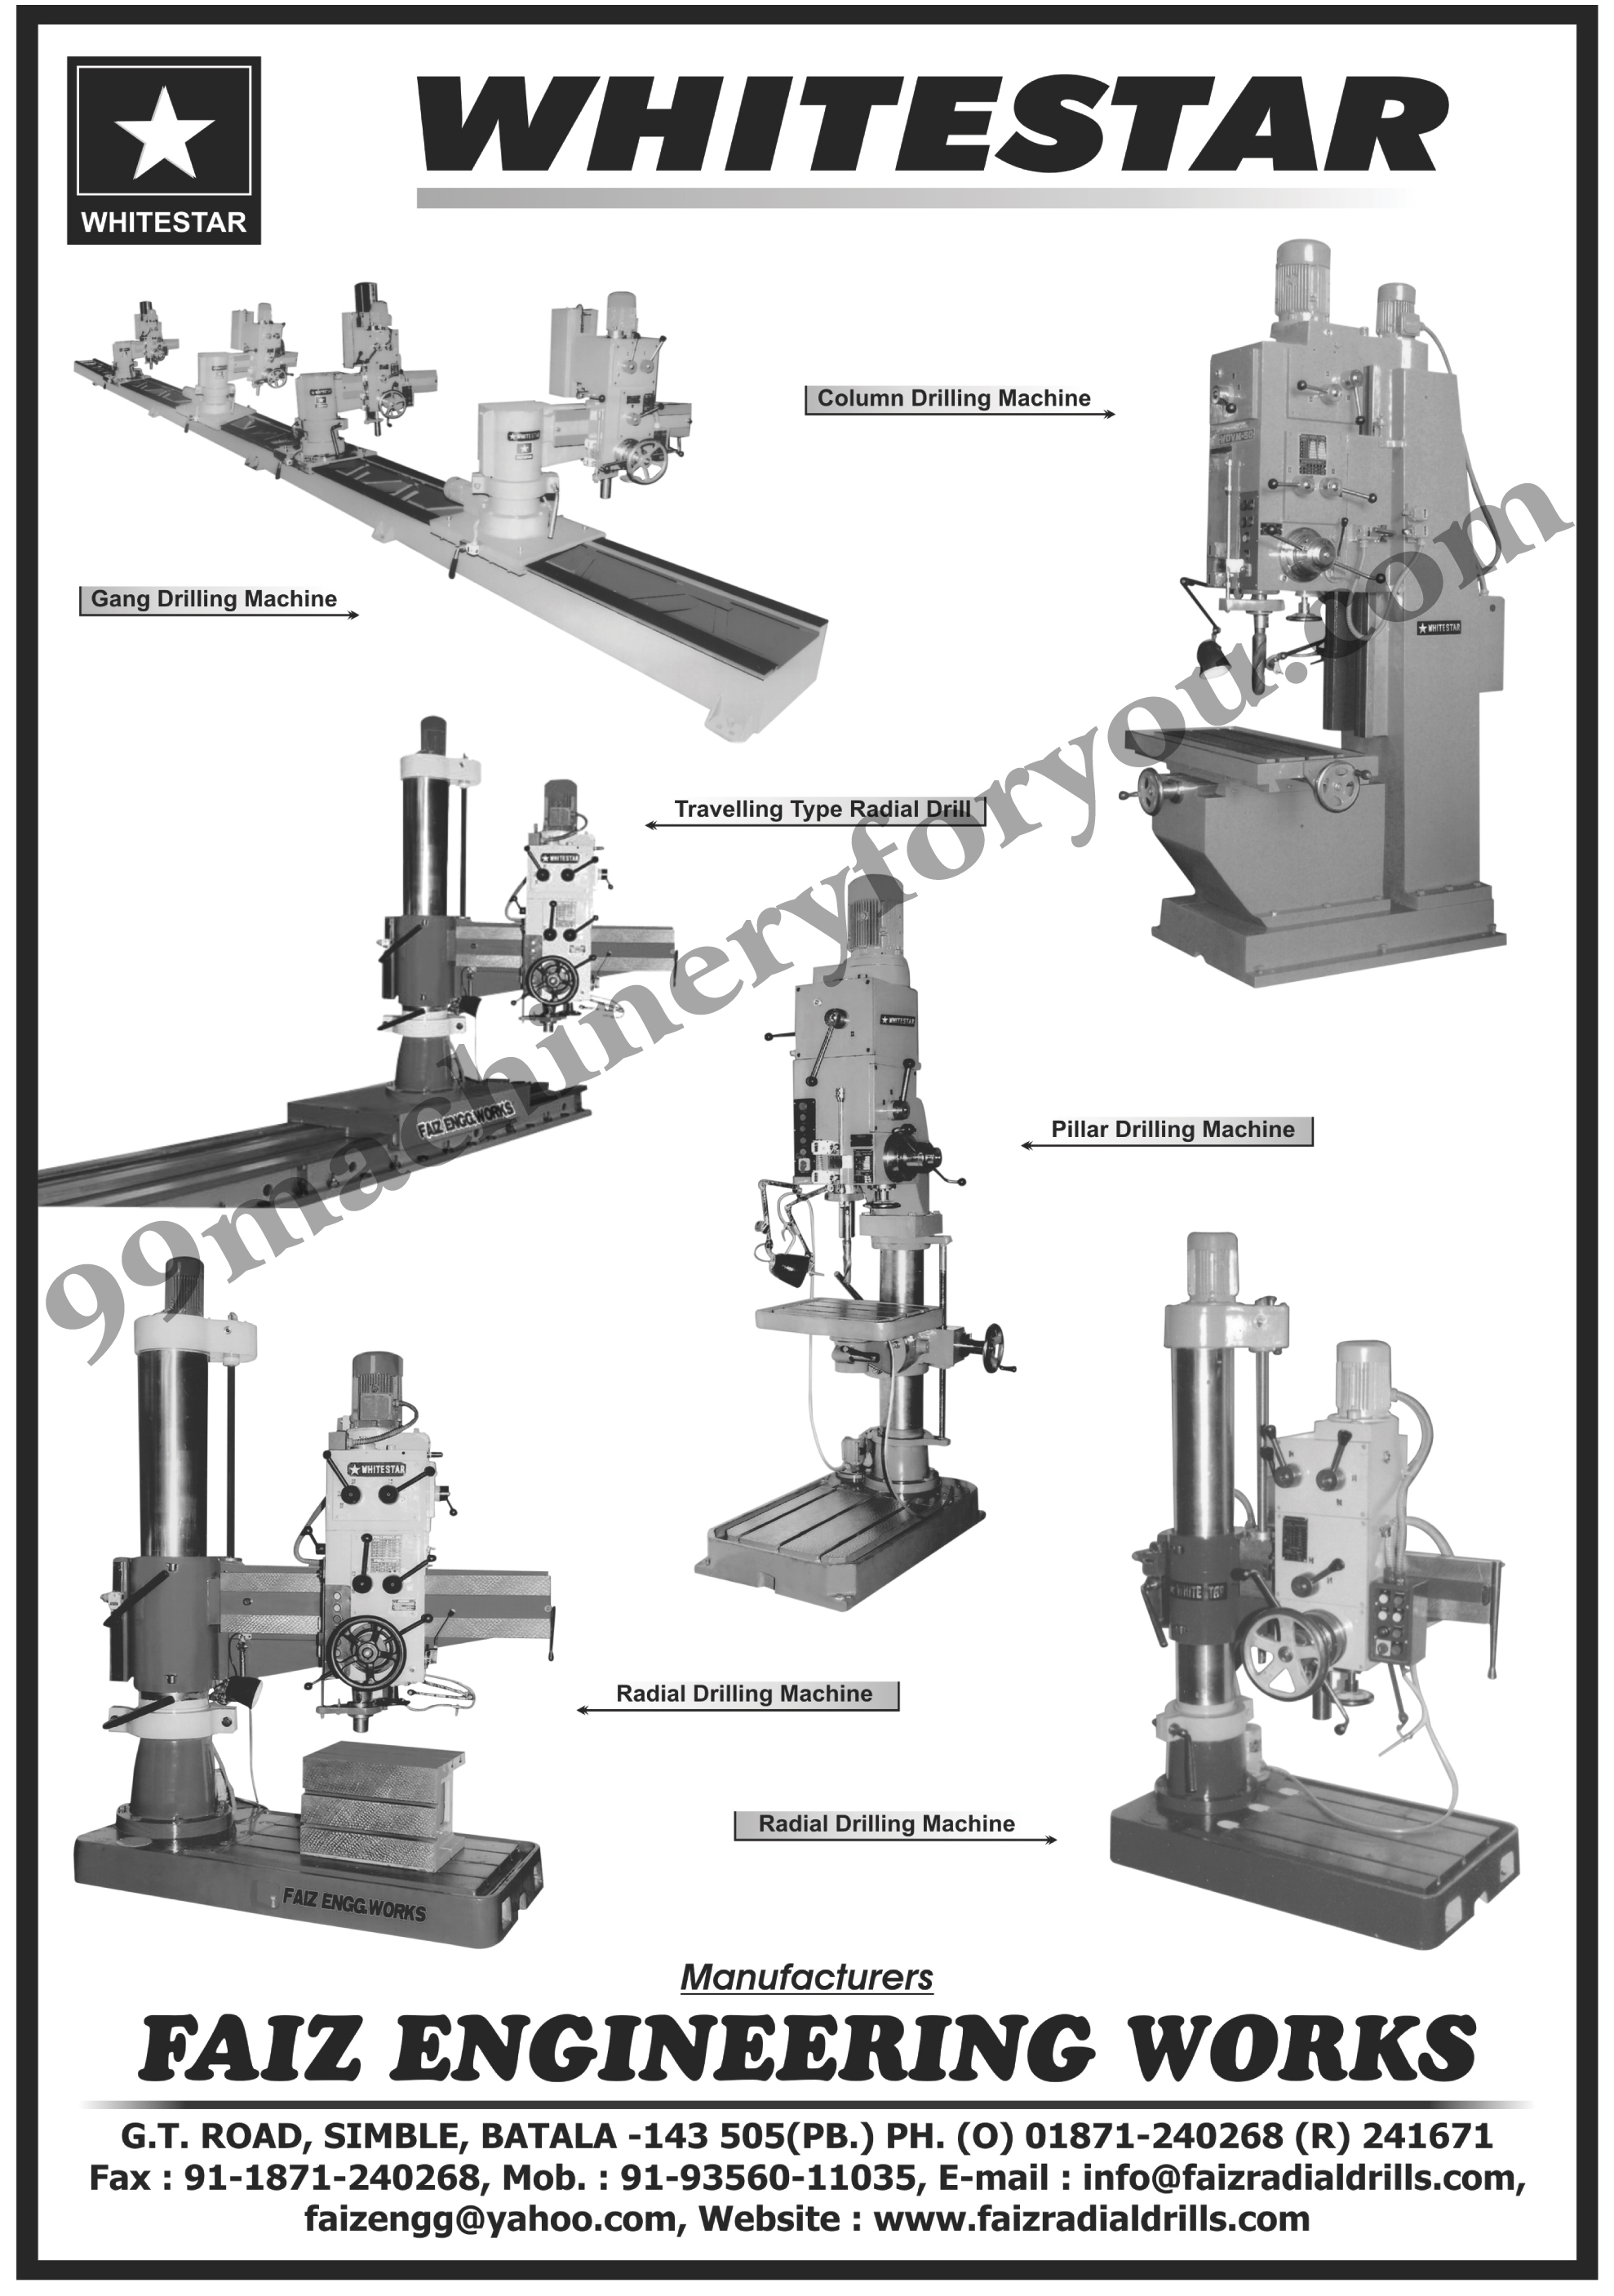 Radial Drilling Machines, Gang Drilling Machines, Column Drilling Machines, Travelling Type Radial Drill, Pillar Drilling Machines, ,Vertical, Horizontal, Tilting Tables, Multi Drilling Machines, Pillar Type Drilling Machines Mining, Exploration Drilling Machinery, Drilling Machinery